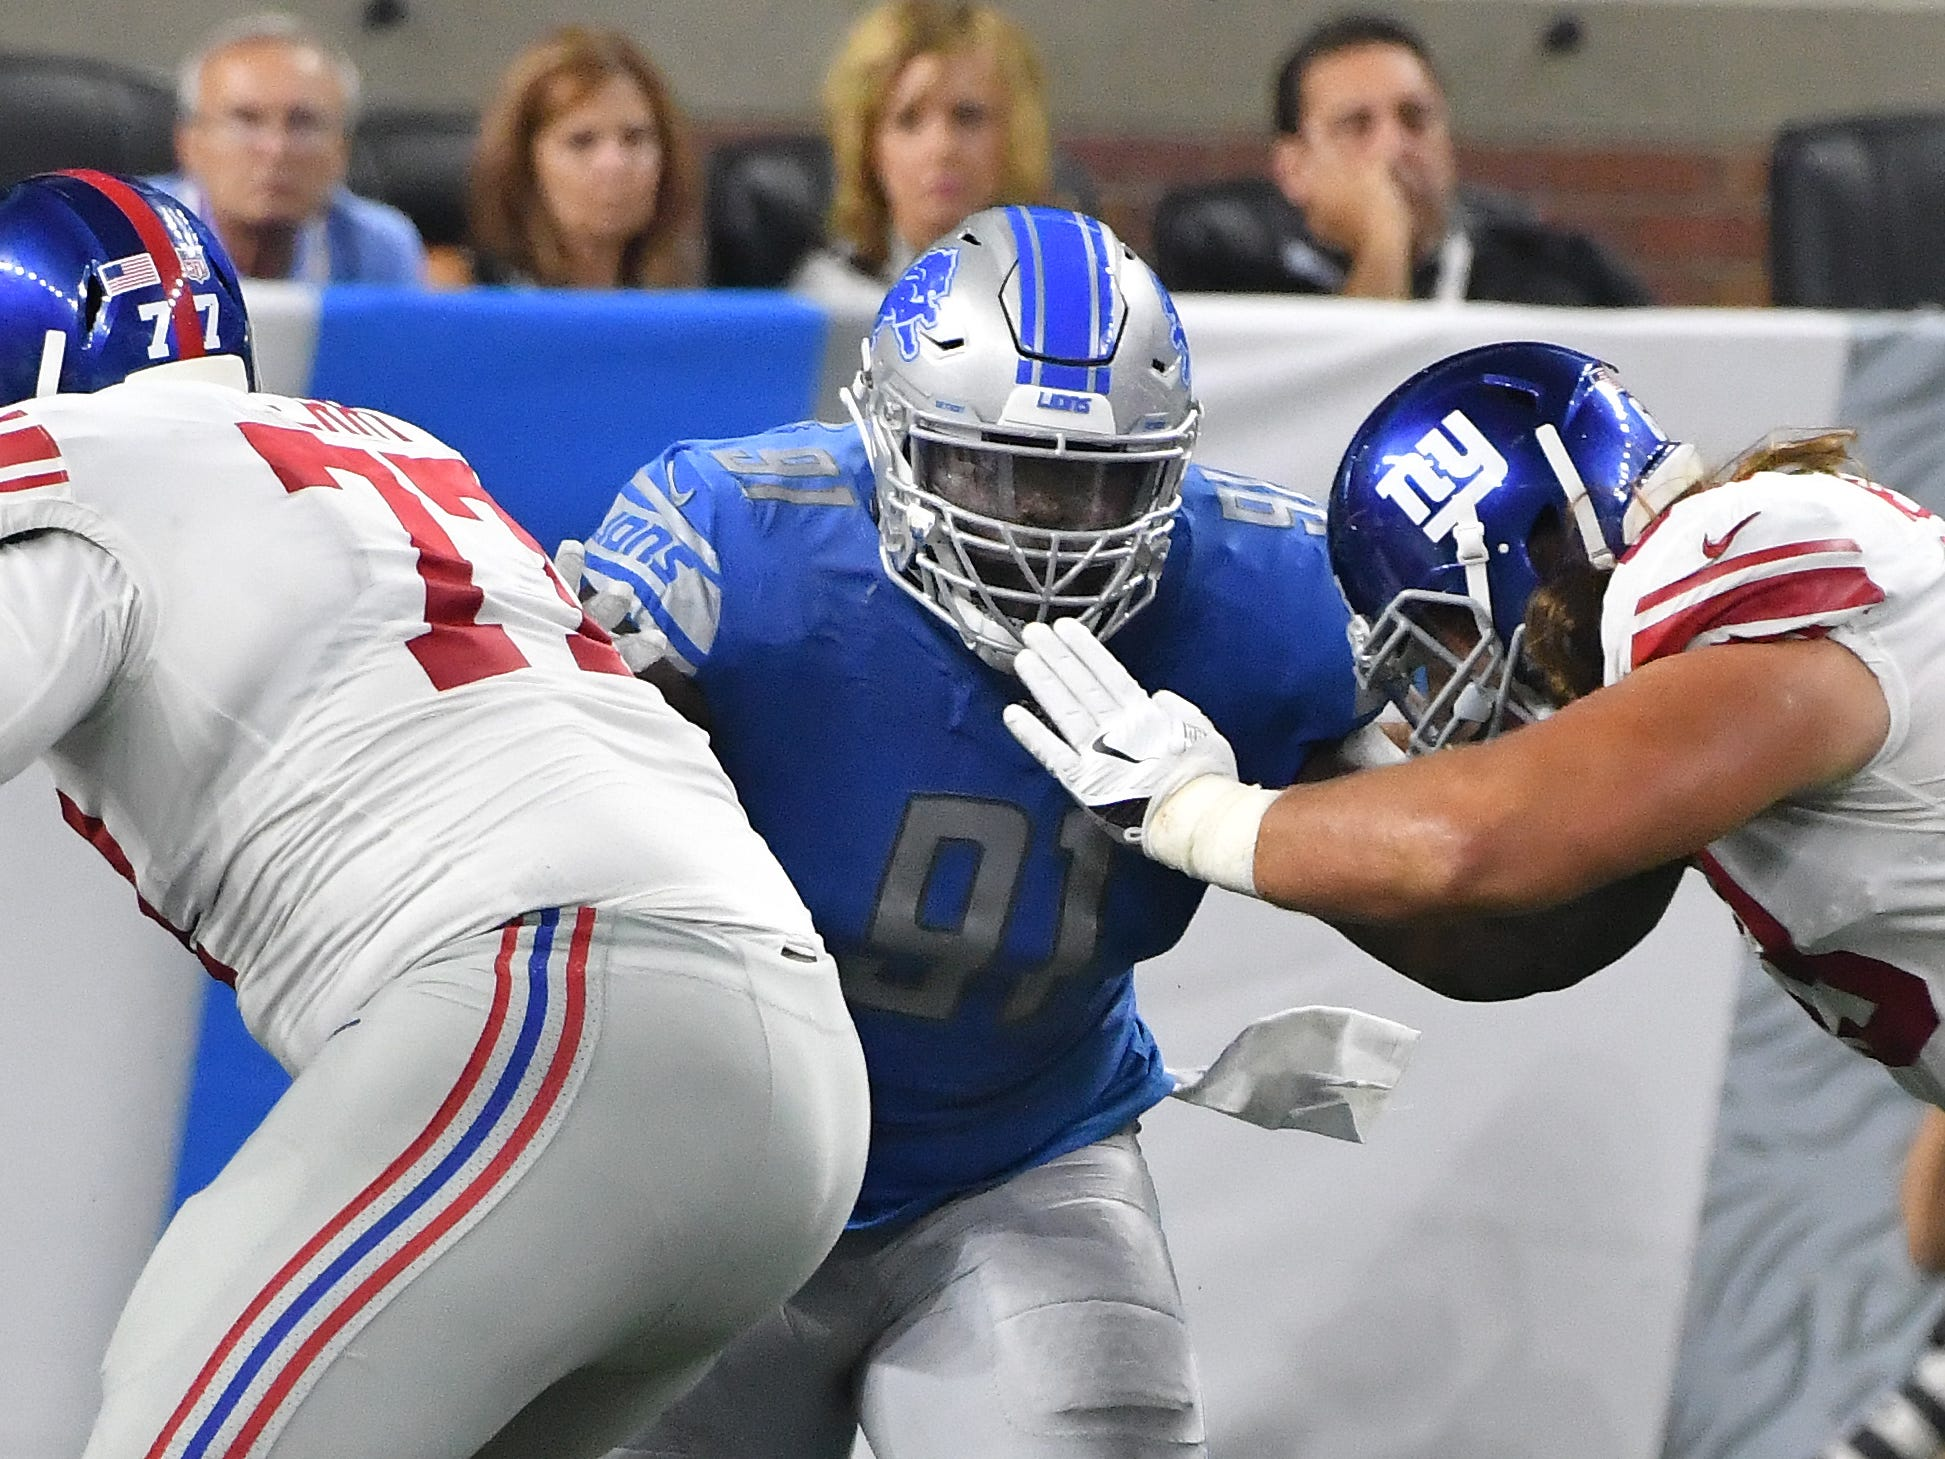 Lions defense tackle A'Shawn Robinson works on the defensive line in the fourth quarter.